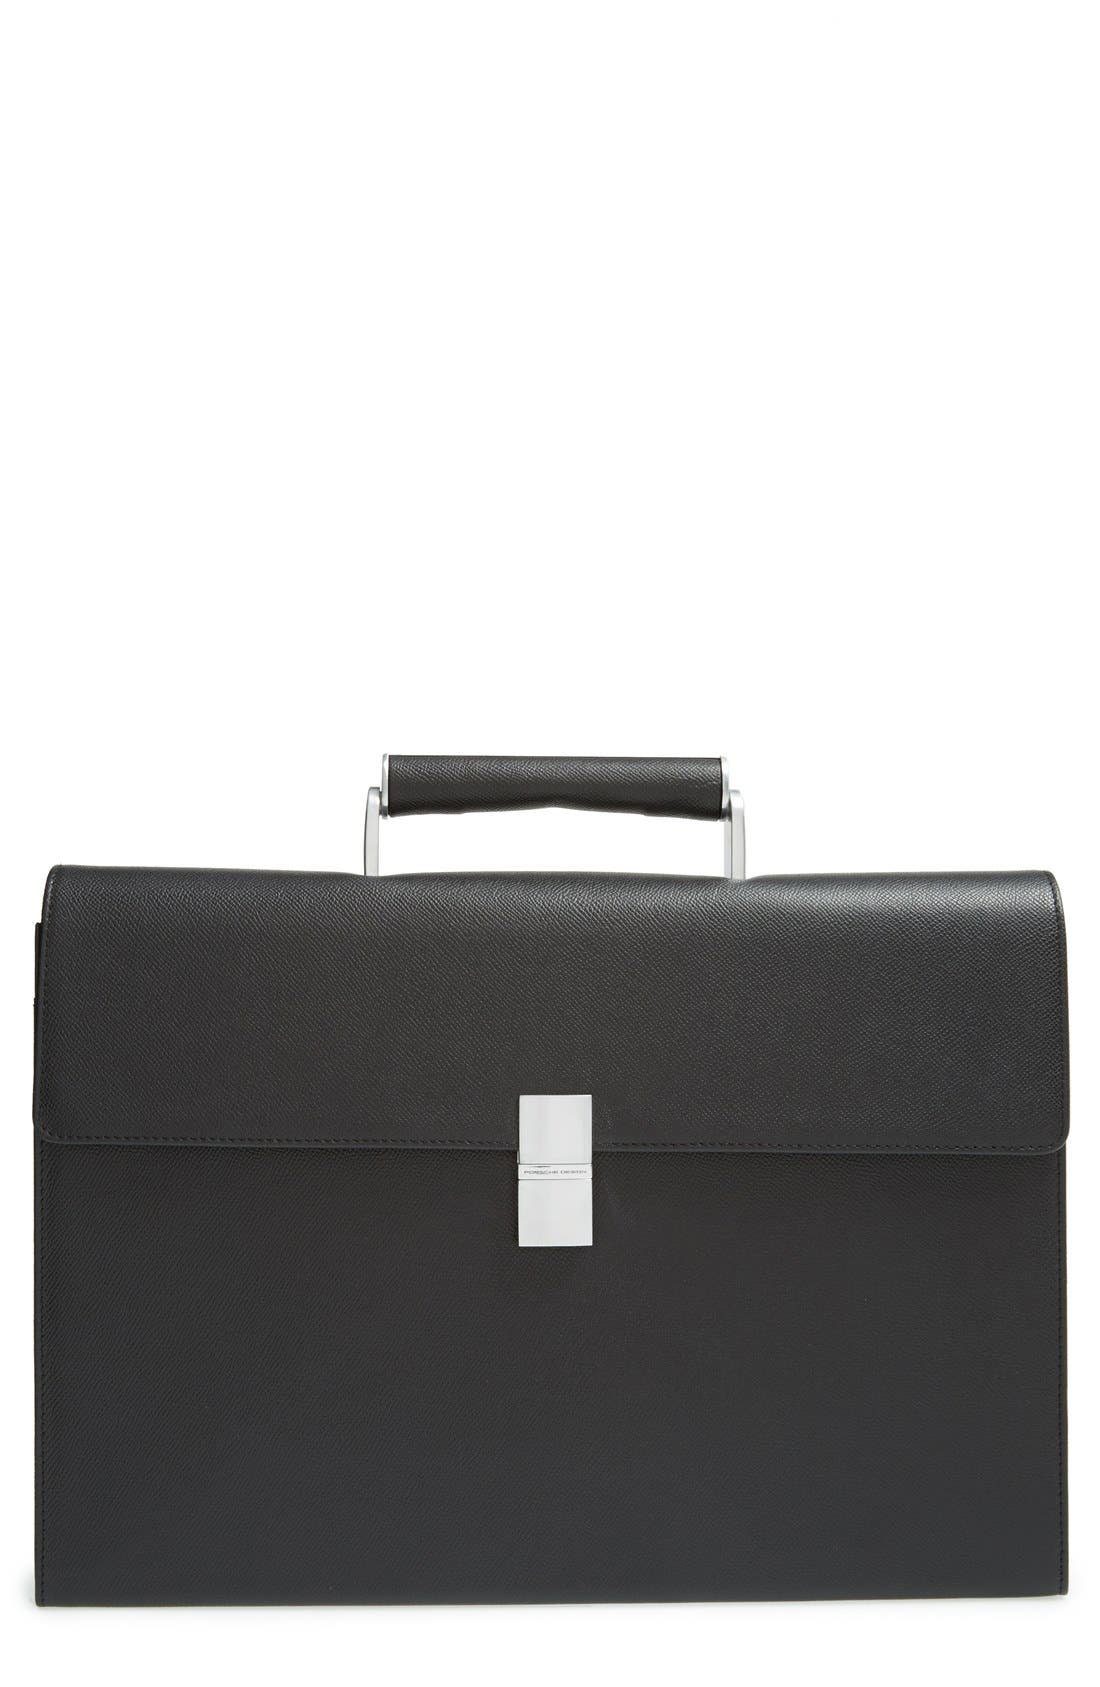 PORSCHE DESIGN French Classic 3.0 Leather Briefcase